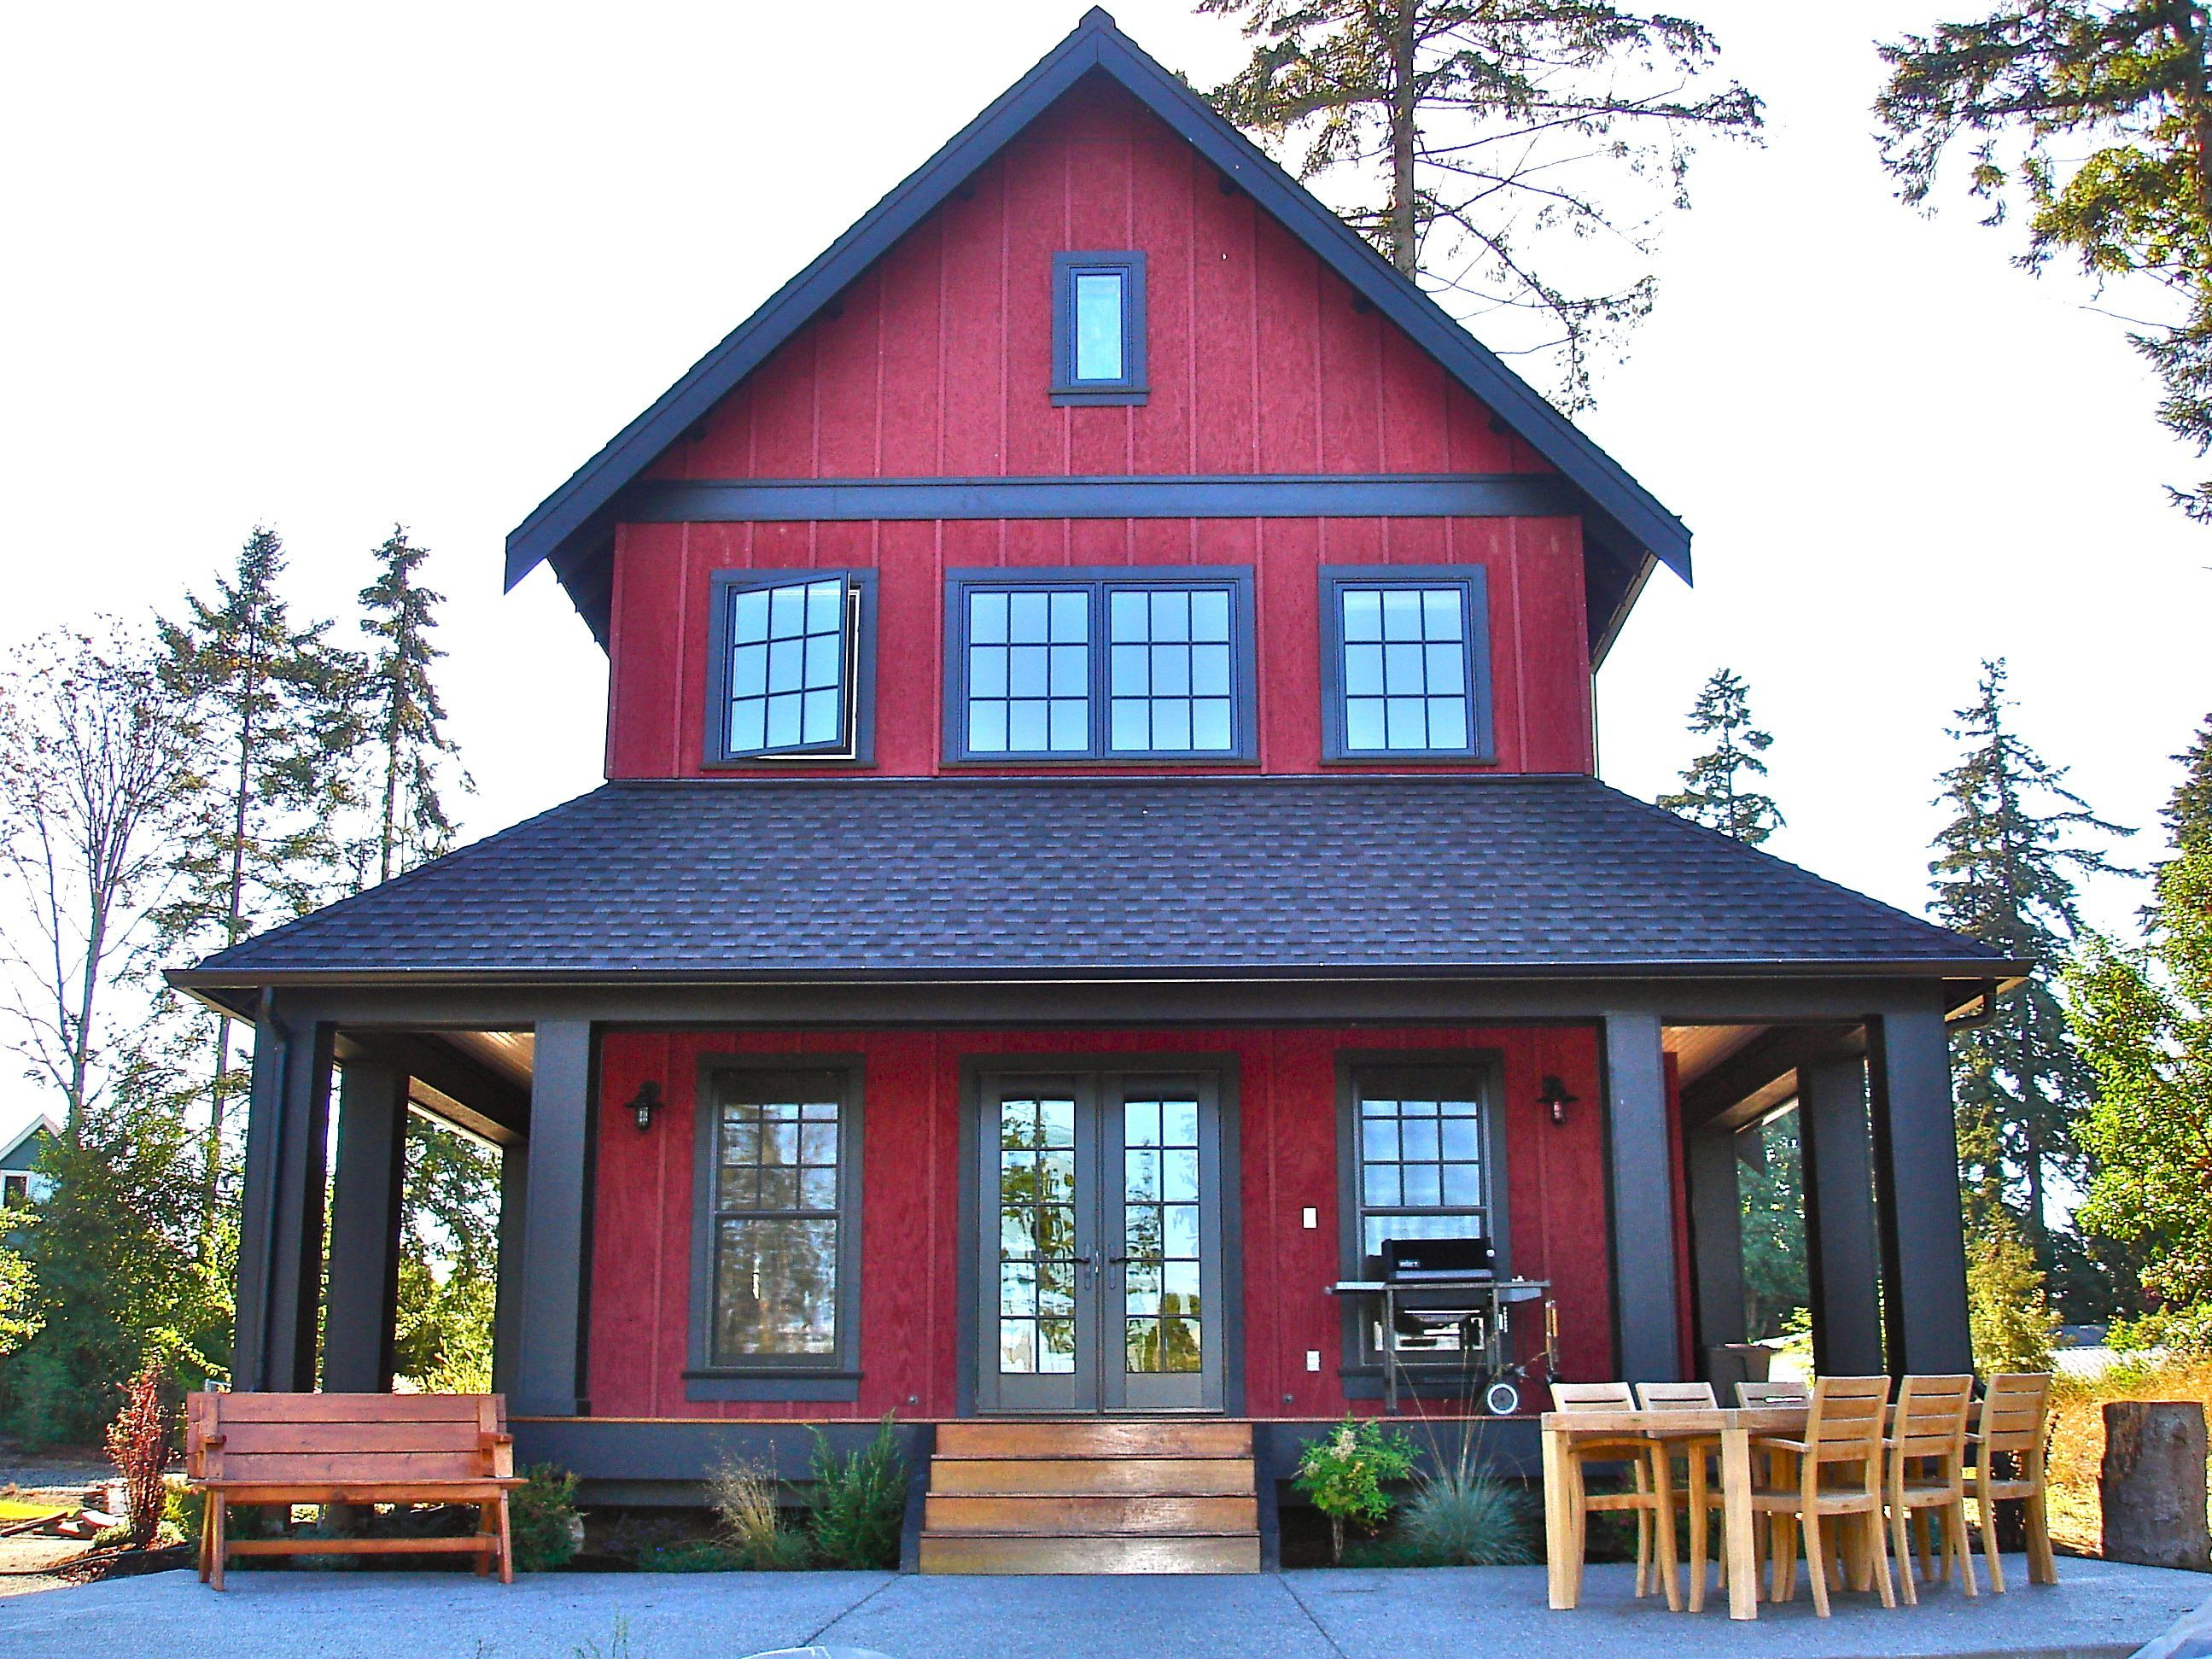 Sears architects seattle modern cottage style for Black roof house